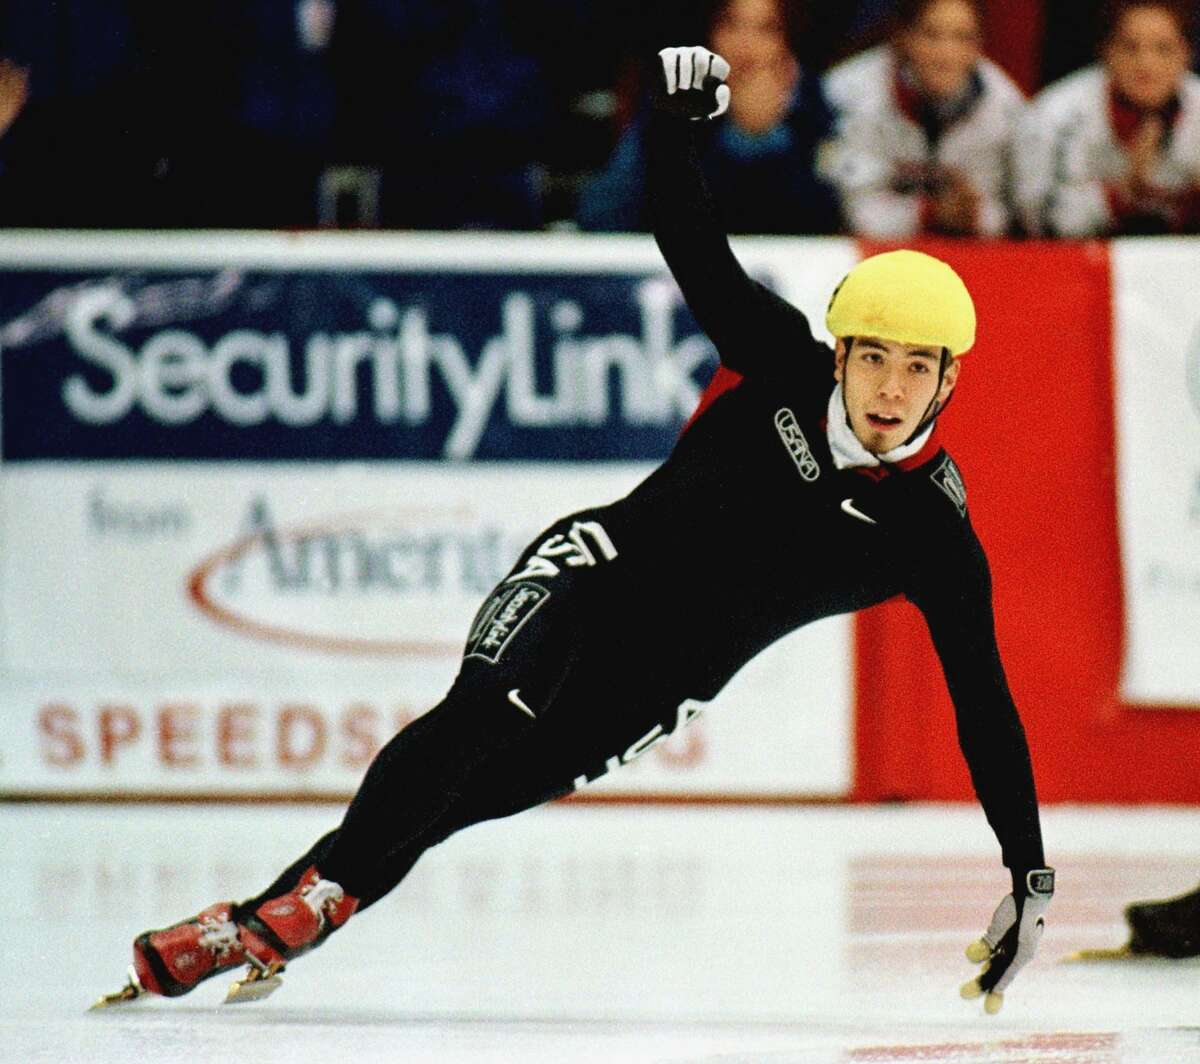 Apolo Anton Ohno from the USA celebrates after winning the men's 500 meter finals race at the 2000 short track speed skating World Cup Championships in Provo, Utah.